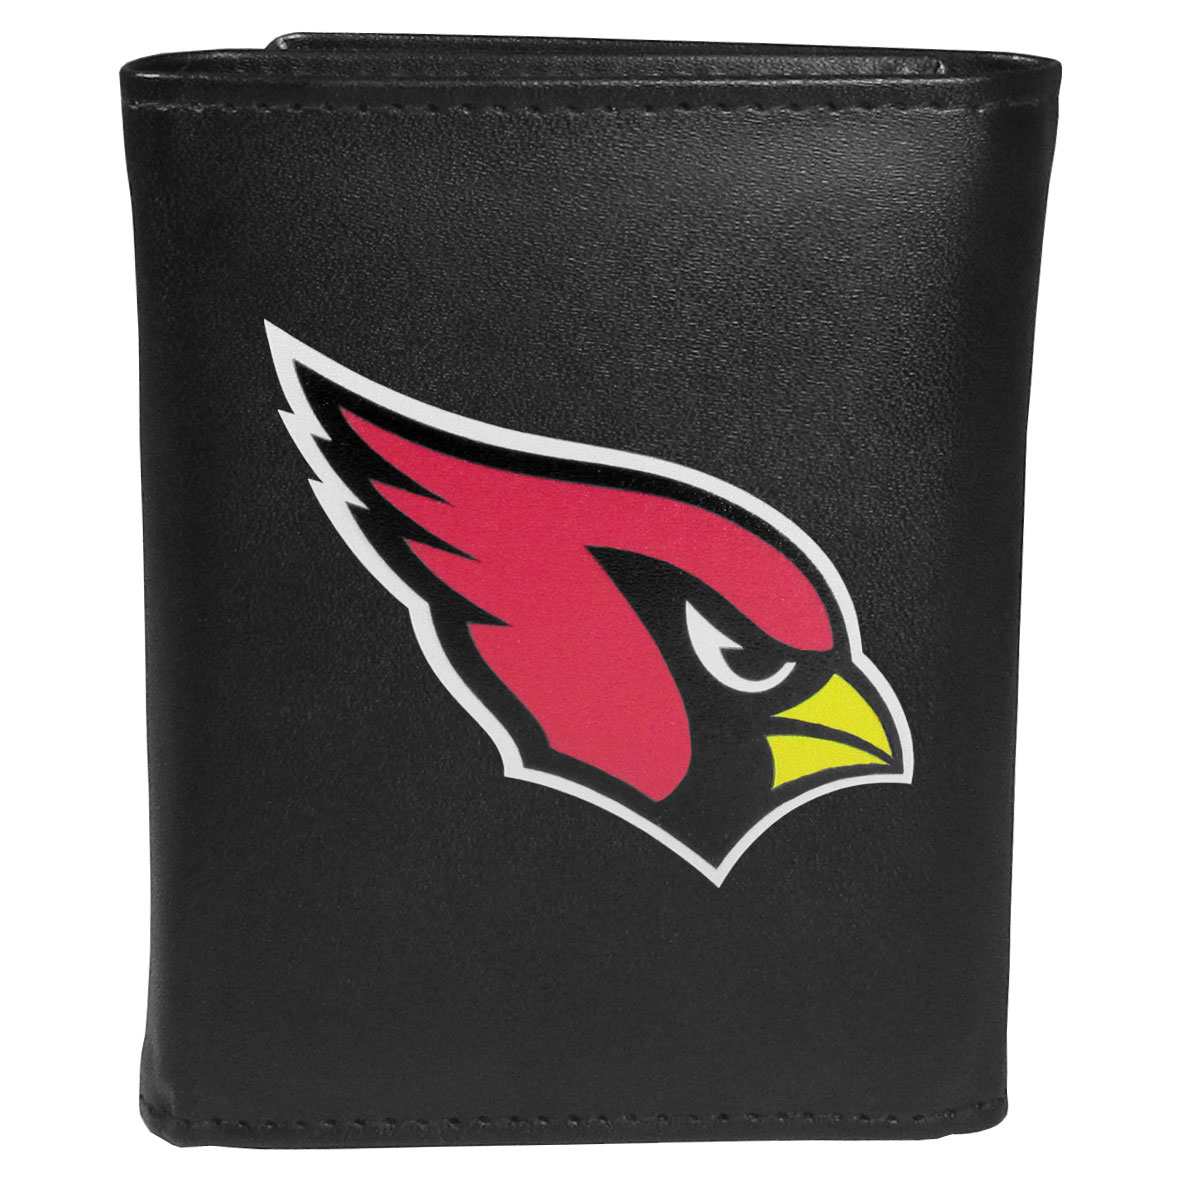 Arizona Cardinals Leather Tri-fold Wallet, Large Logo - Our classic fine leather tri-fold wallet is meticulously crafted with genuine leather that will age beautifully so you will have a quality wallet for years to come. This is fan apparel at its finest. The wallet is packed with organizational  features; lots of credit card slots, large billfold pocket, and a window ID slot. The front of the wallet features an extra large Arizona Cardinals printed logo.